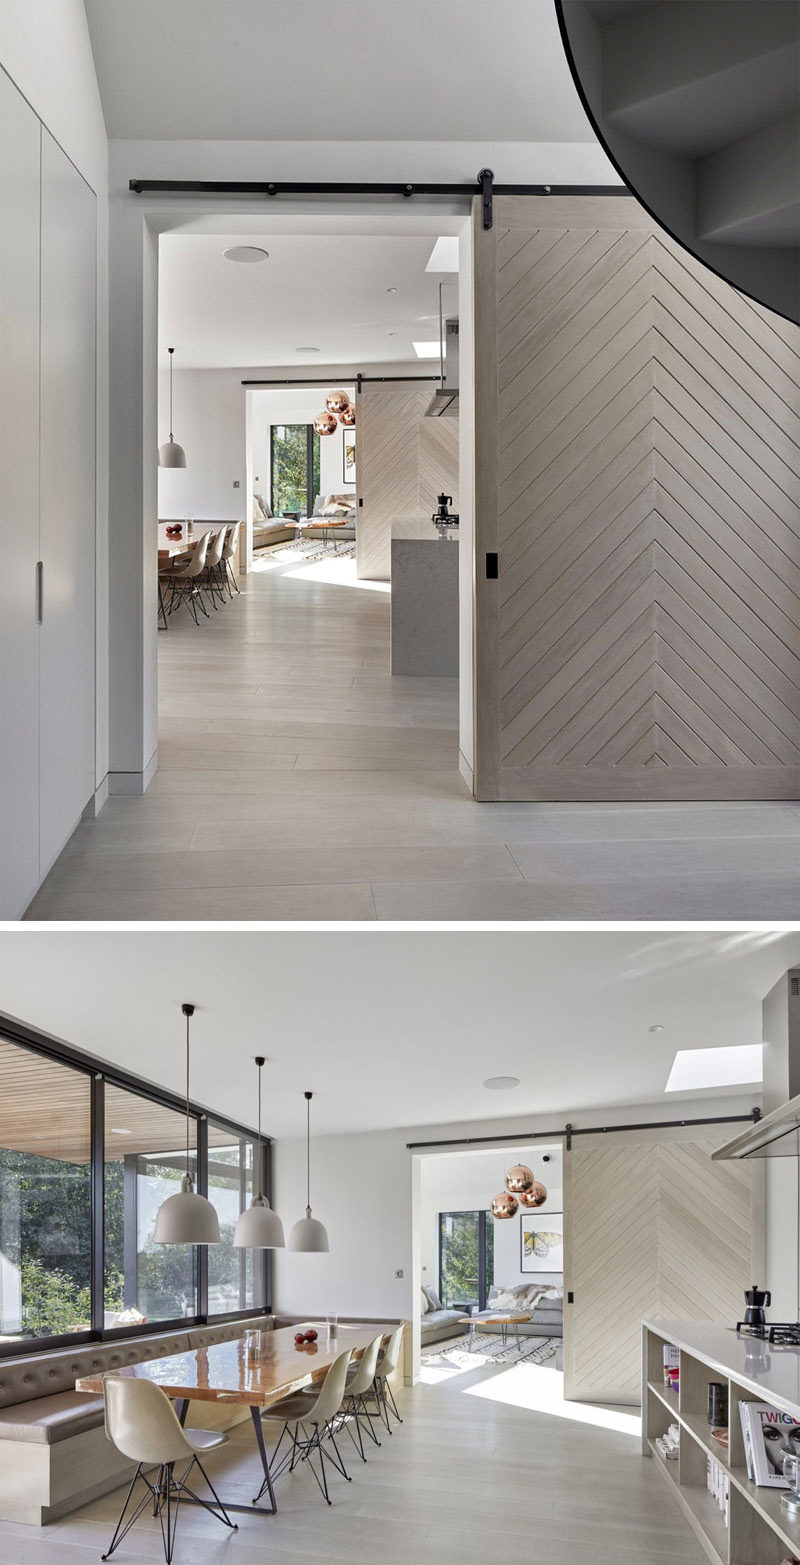 The chevron pattern on these sliding doors give the home a modern look and help divide the space when necessary but also keep the rooms connected.